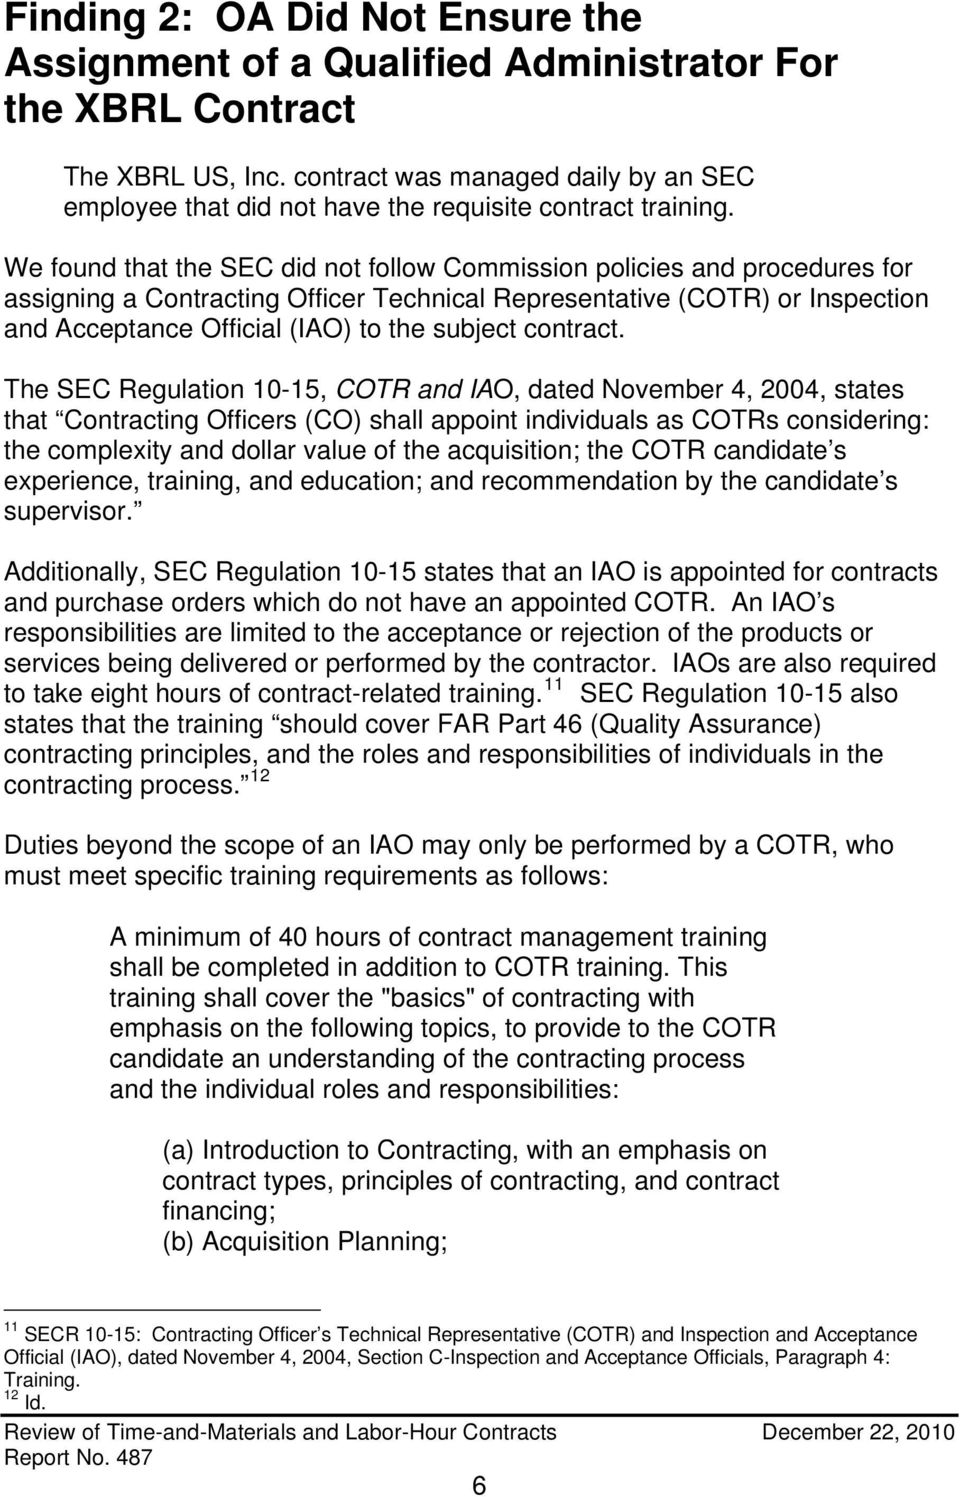 We found that the SEC did not follow Commission policies and procedures for assigning a Contracting Officer Technical Representative (COTR) or Inspection and Acceptance Official (IAO) to the subject